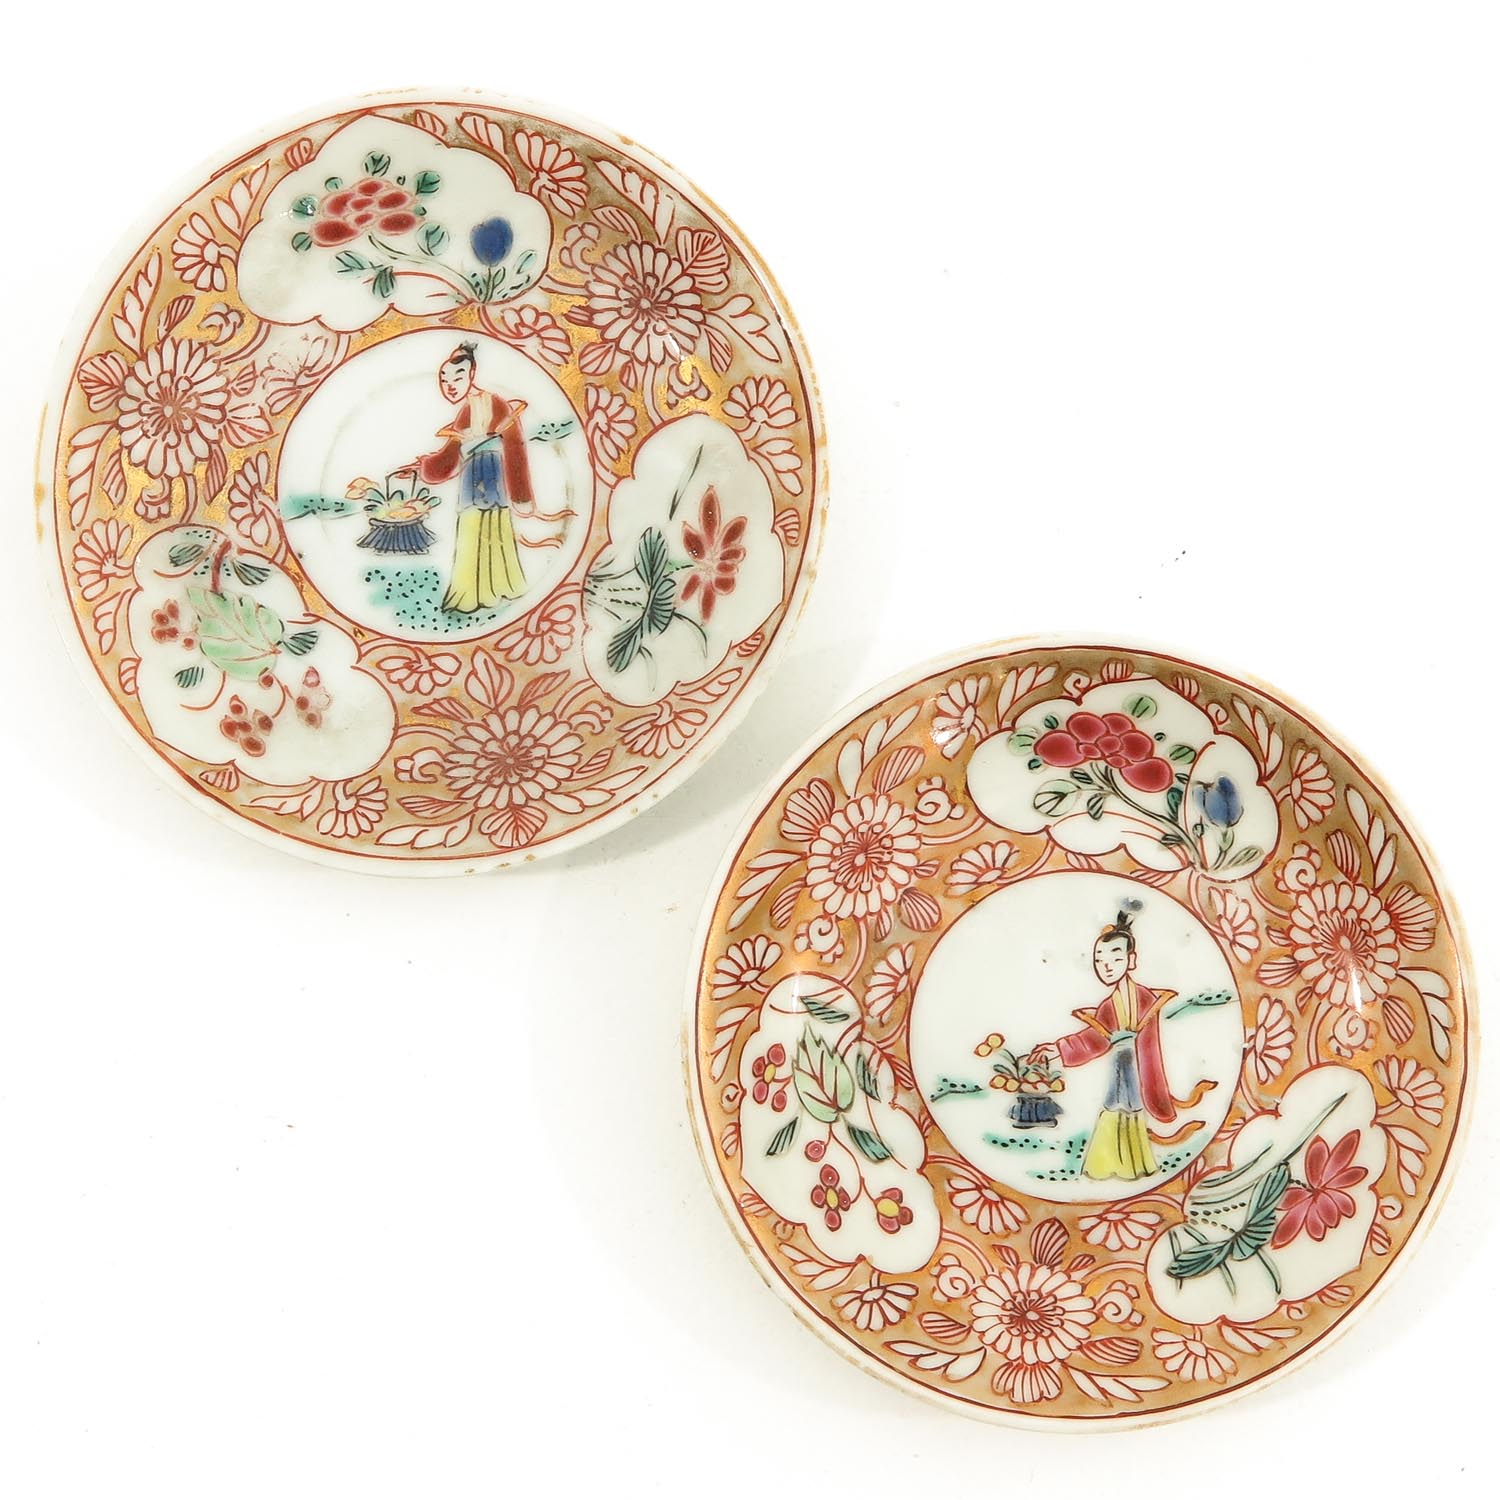 A Set of 2 Cups and Saucers - Image 7 of 10